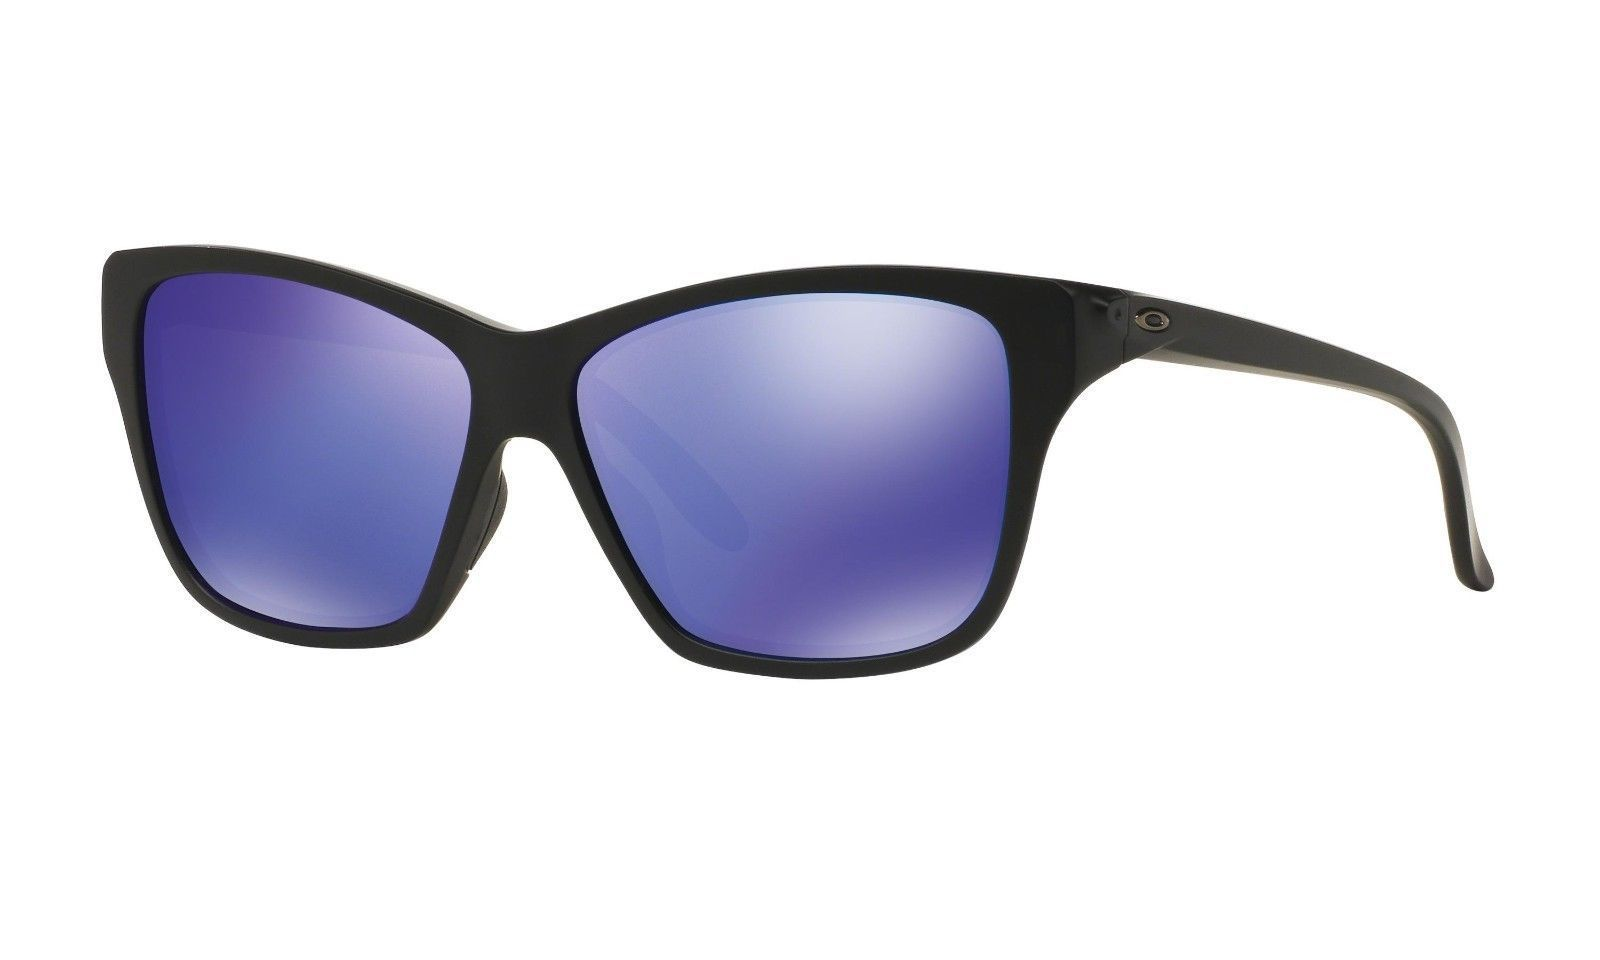 Oakley Hold On Matte Black Frame w/ Violet Iridium Lens Sunglasses (OO9298-08) - Ships Next Day!